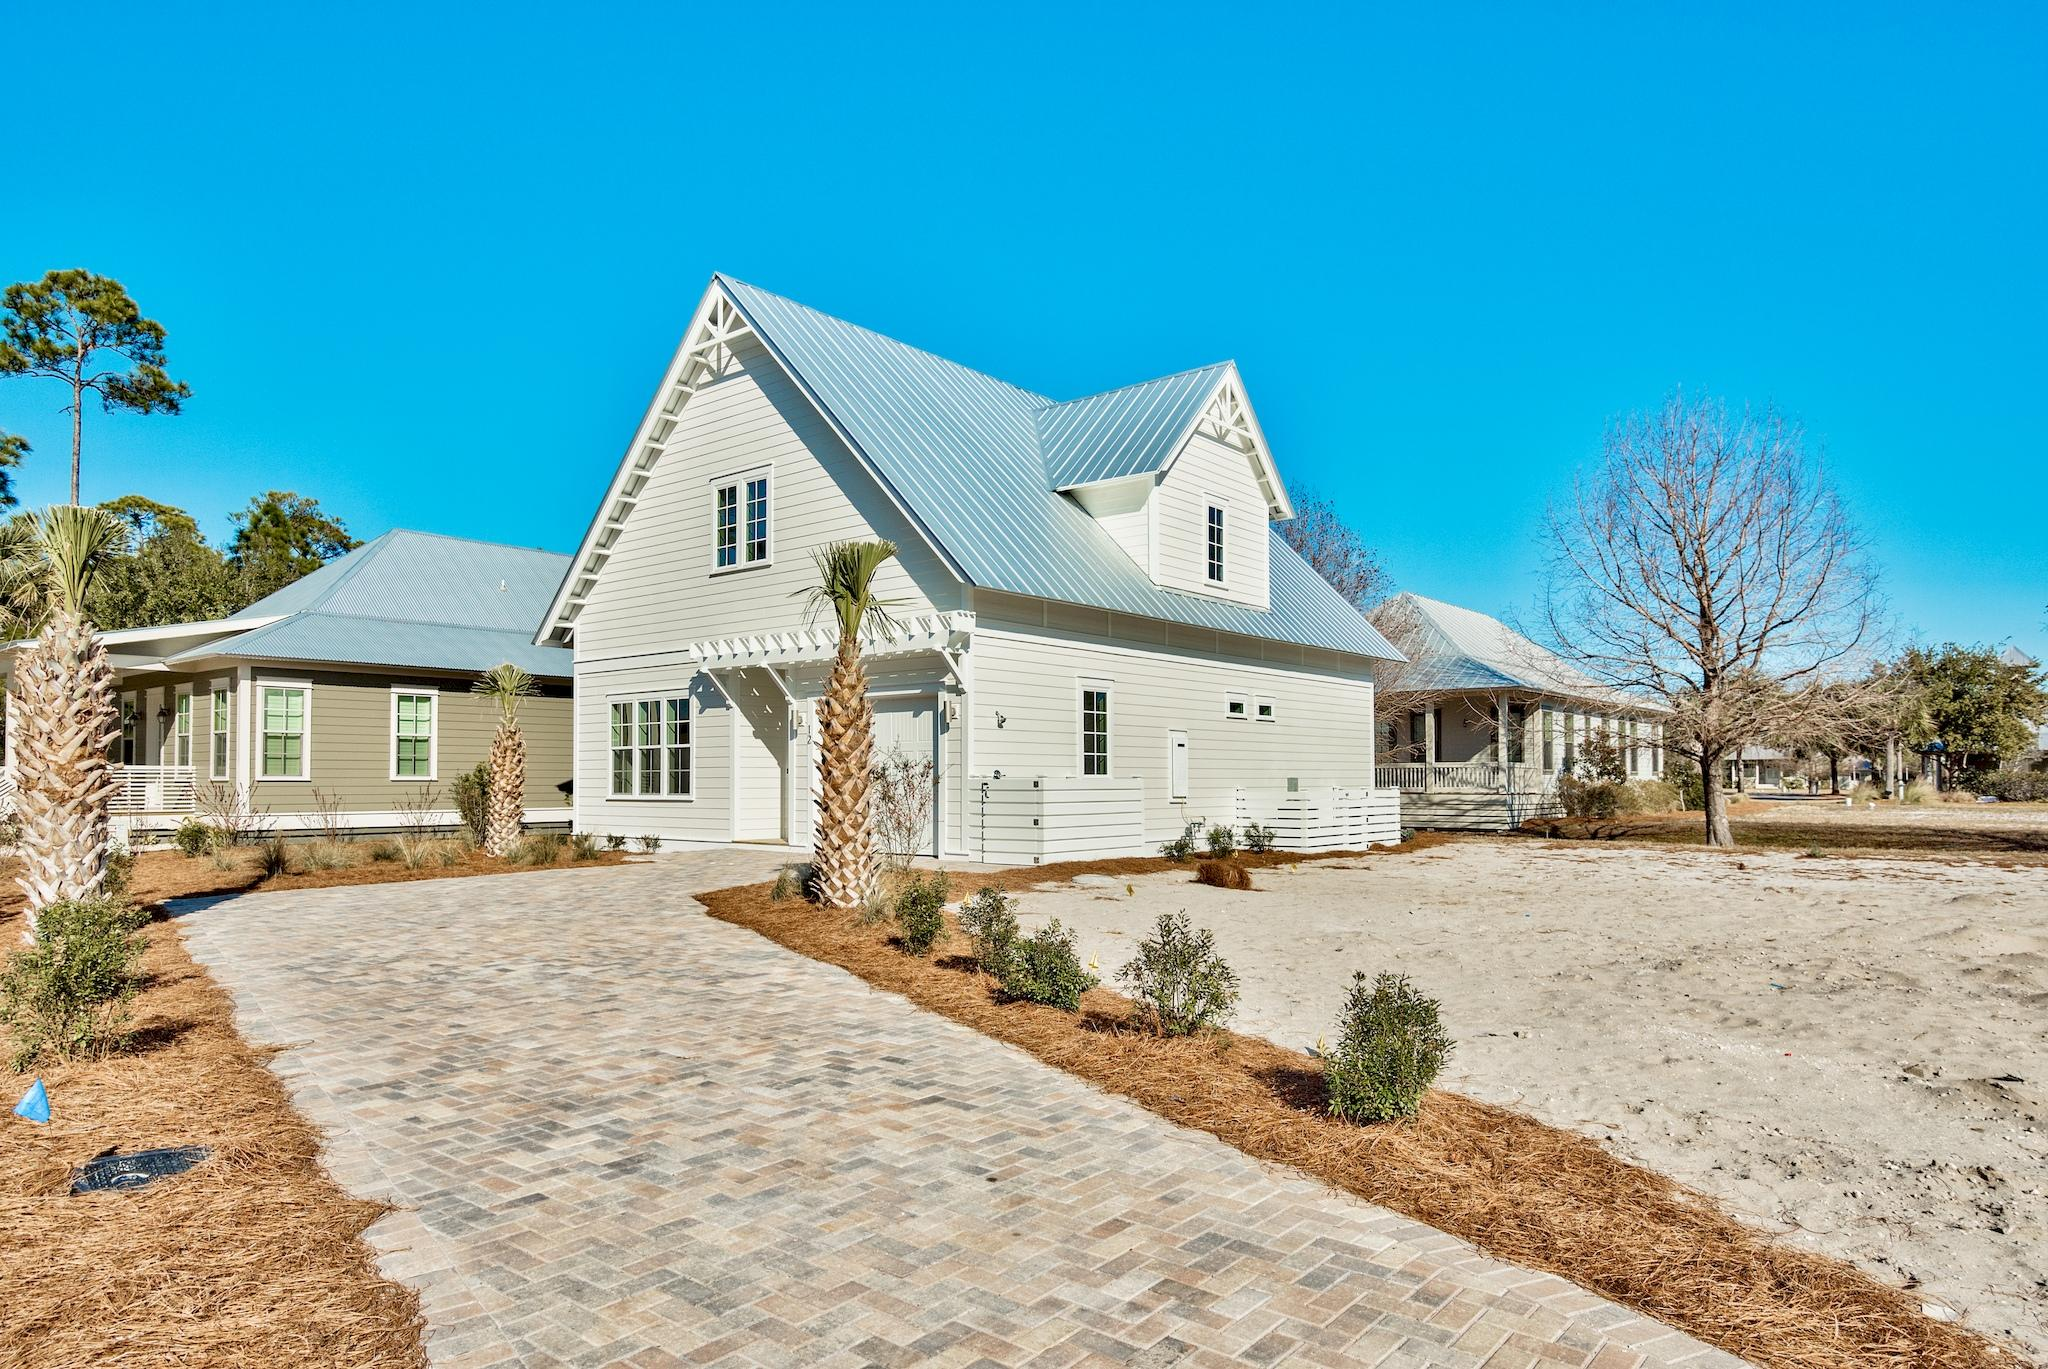 A 4 Bedroom 3 Bedroom Cypress Dunes Home